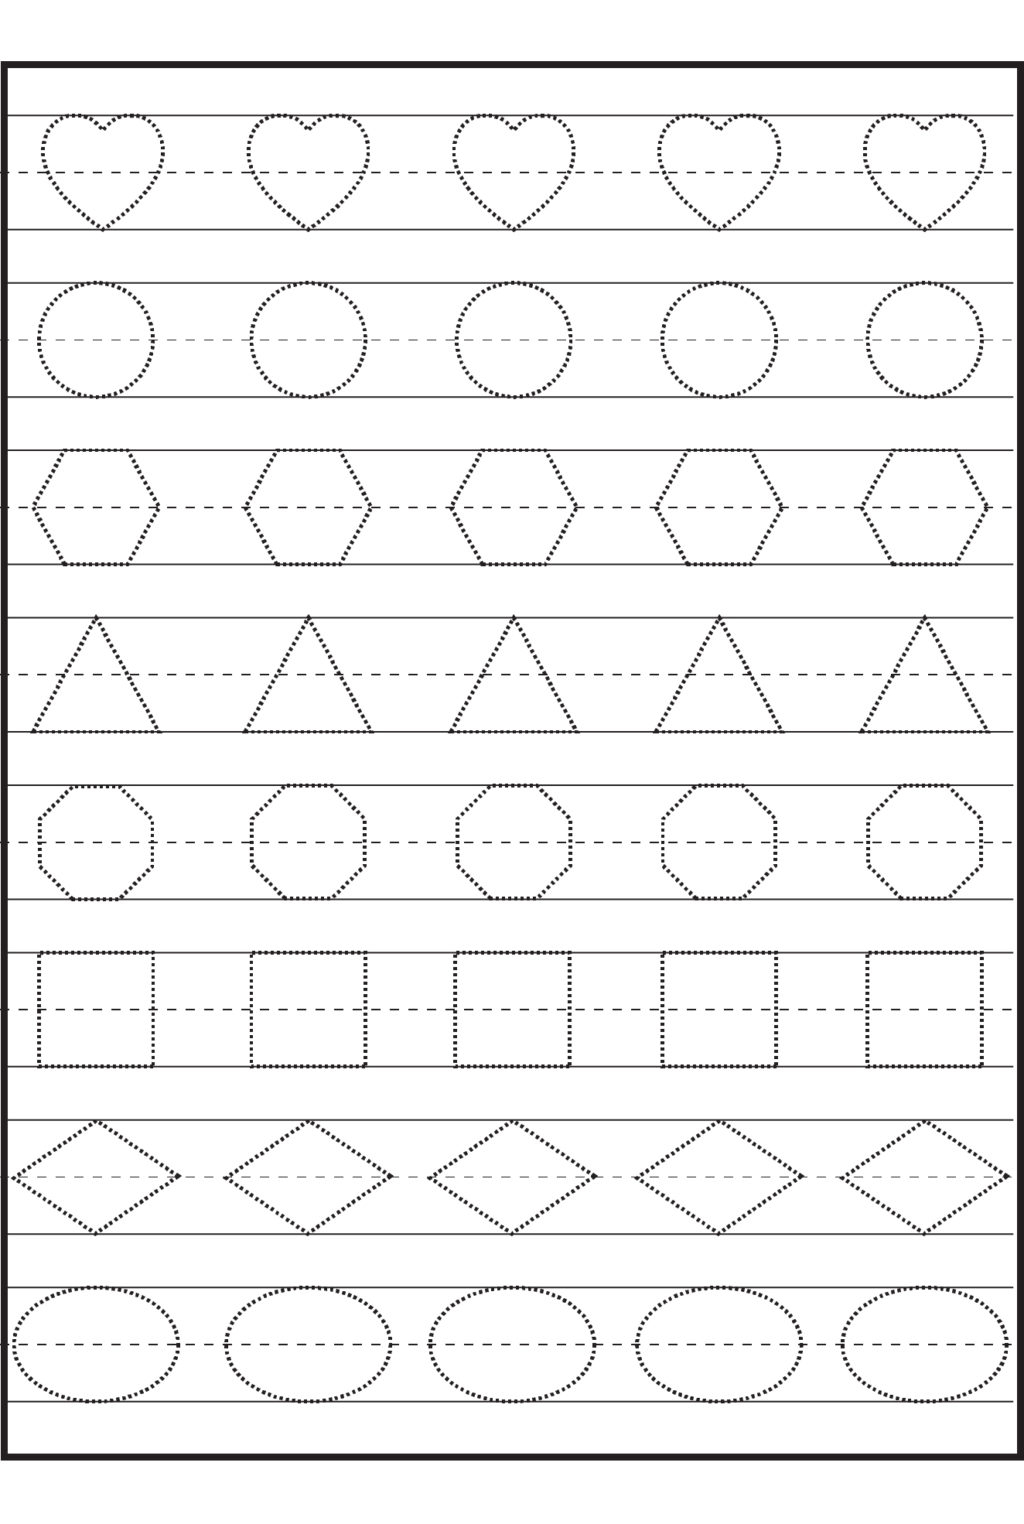 Worksheet ~ Blank Tracing Sheets Make Free Template